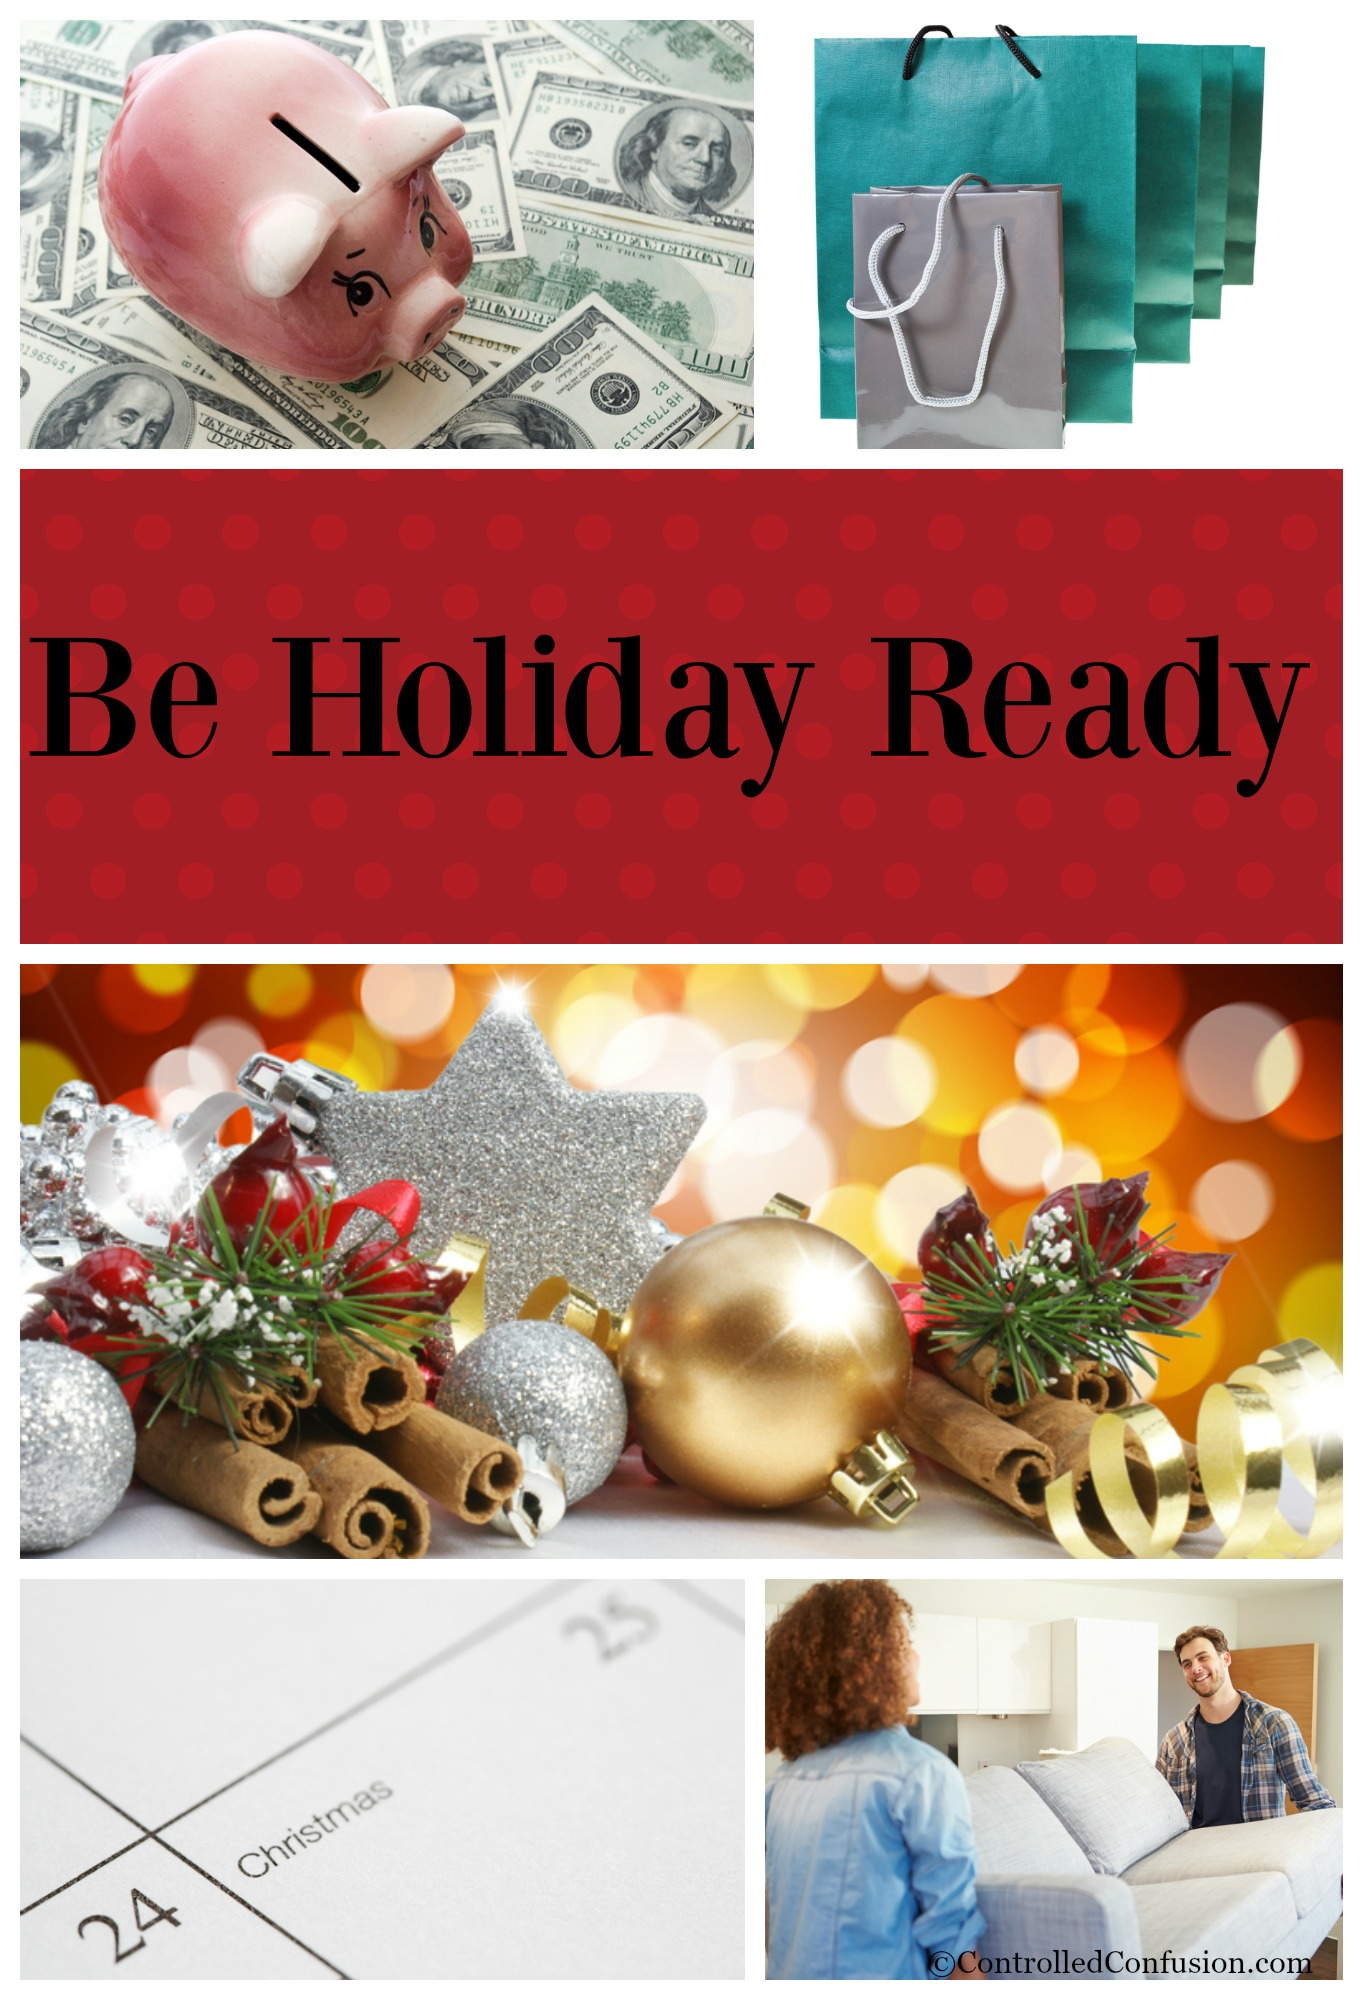 Be Holiday Ready